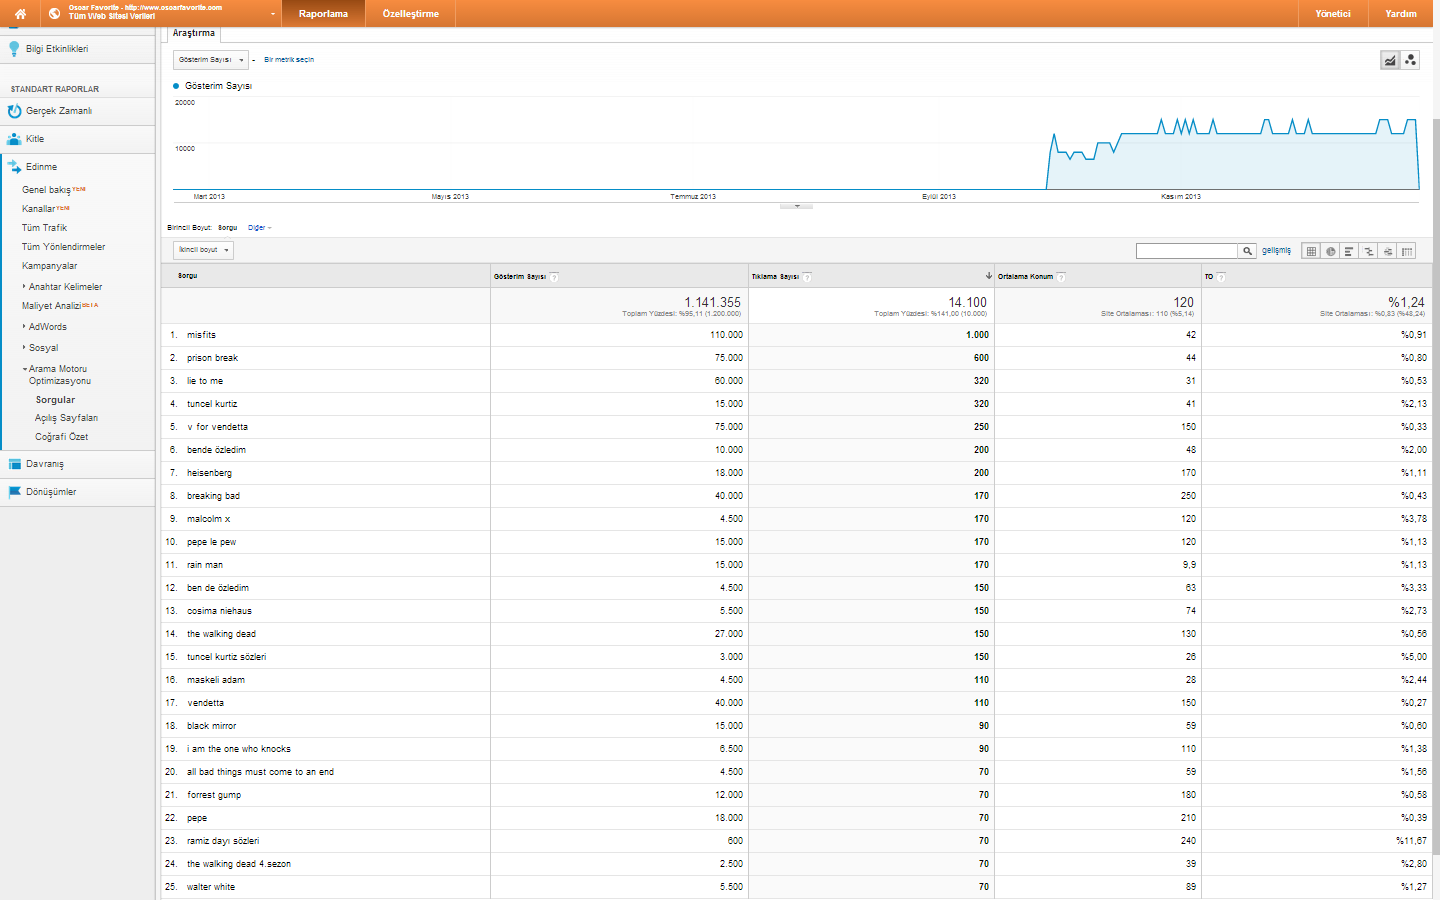 google analytics edinme sorgular tiklama sayisi